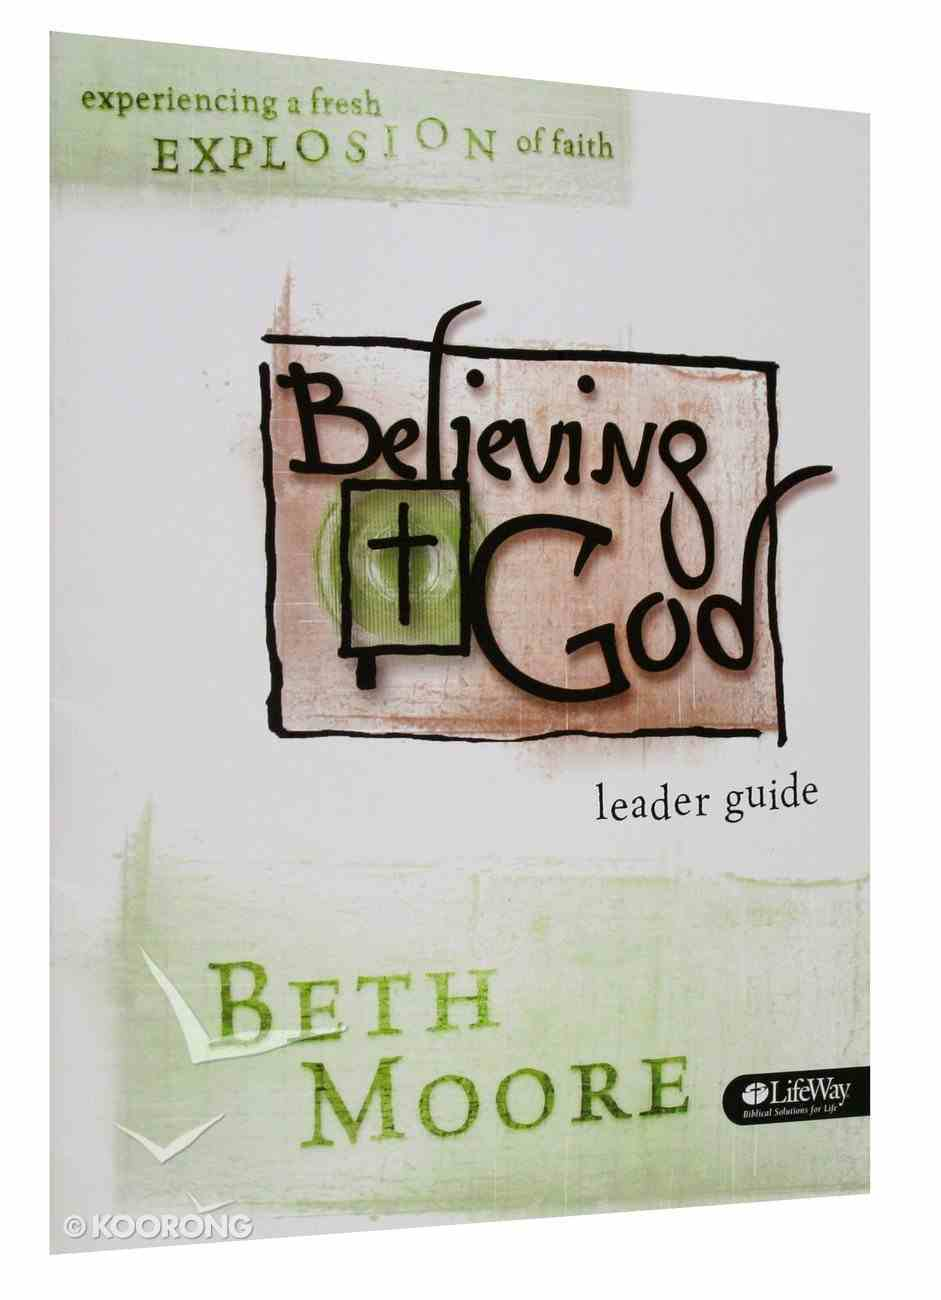 Believing God : Experiencing a Fresh Explosion of Faith (Leader Guide) (Beth Moore Bible Study Series) Paperback